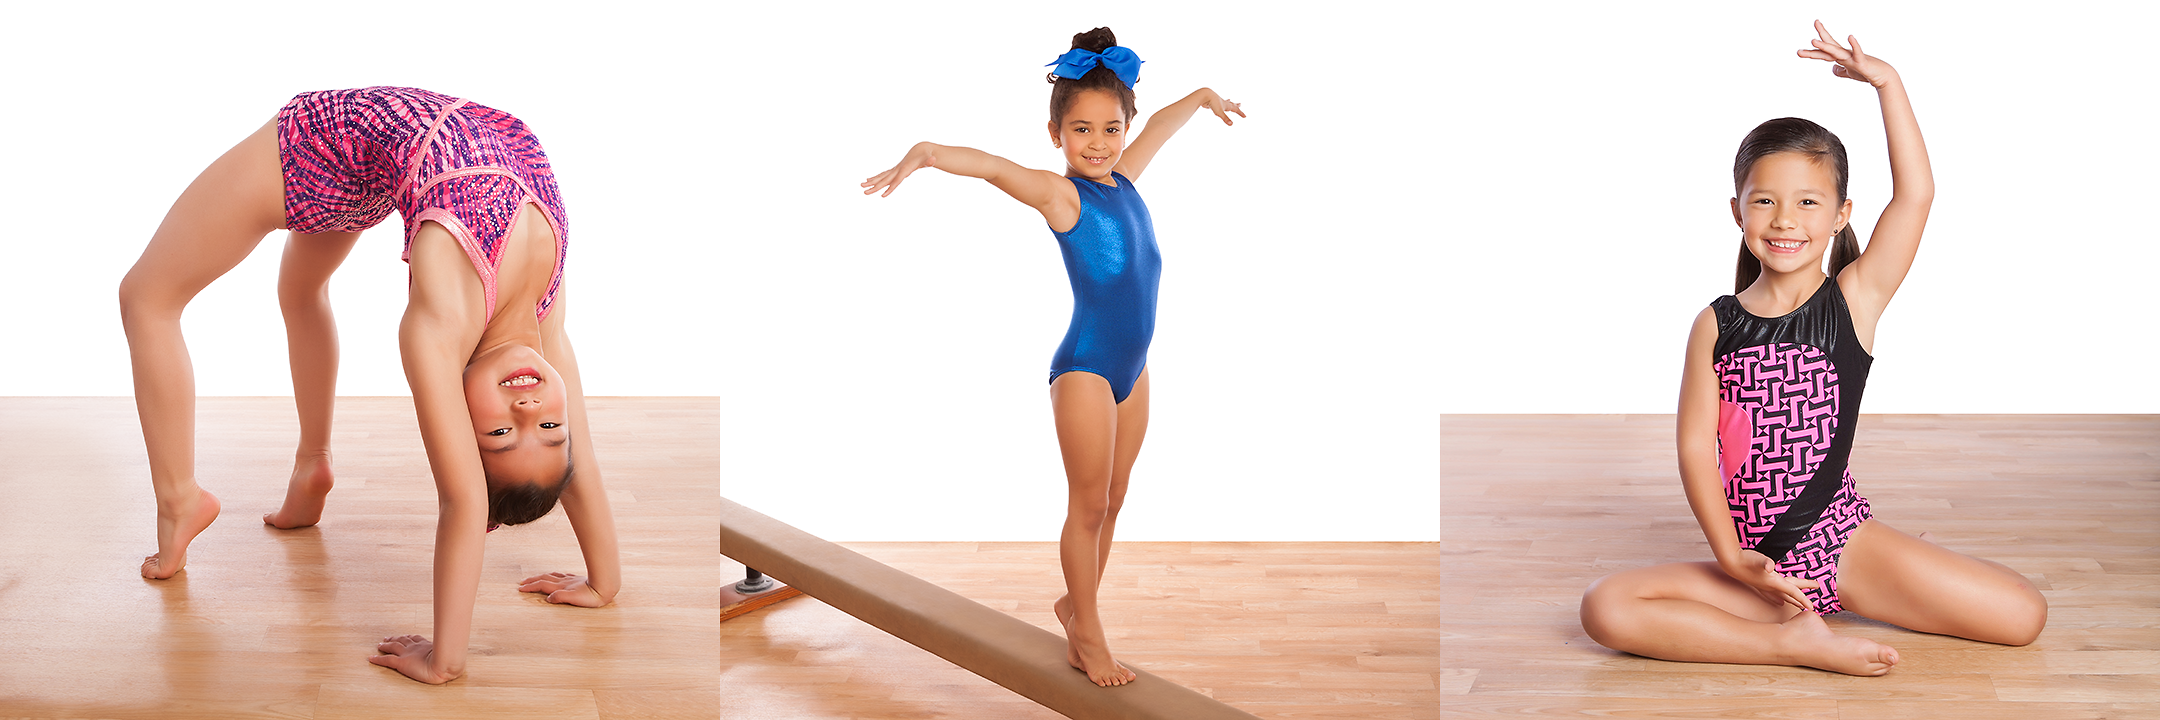 recreational-gymnastics-photography-13